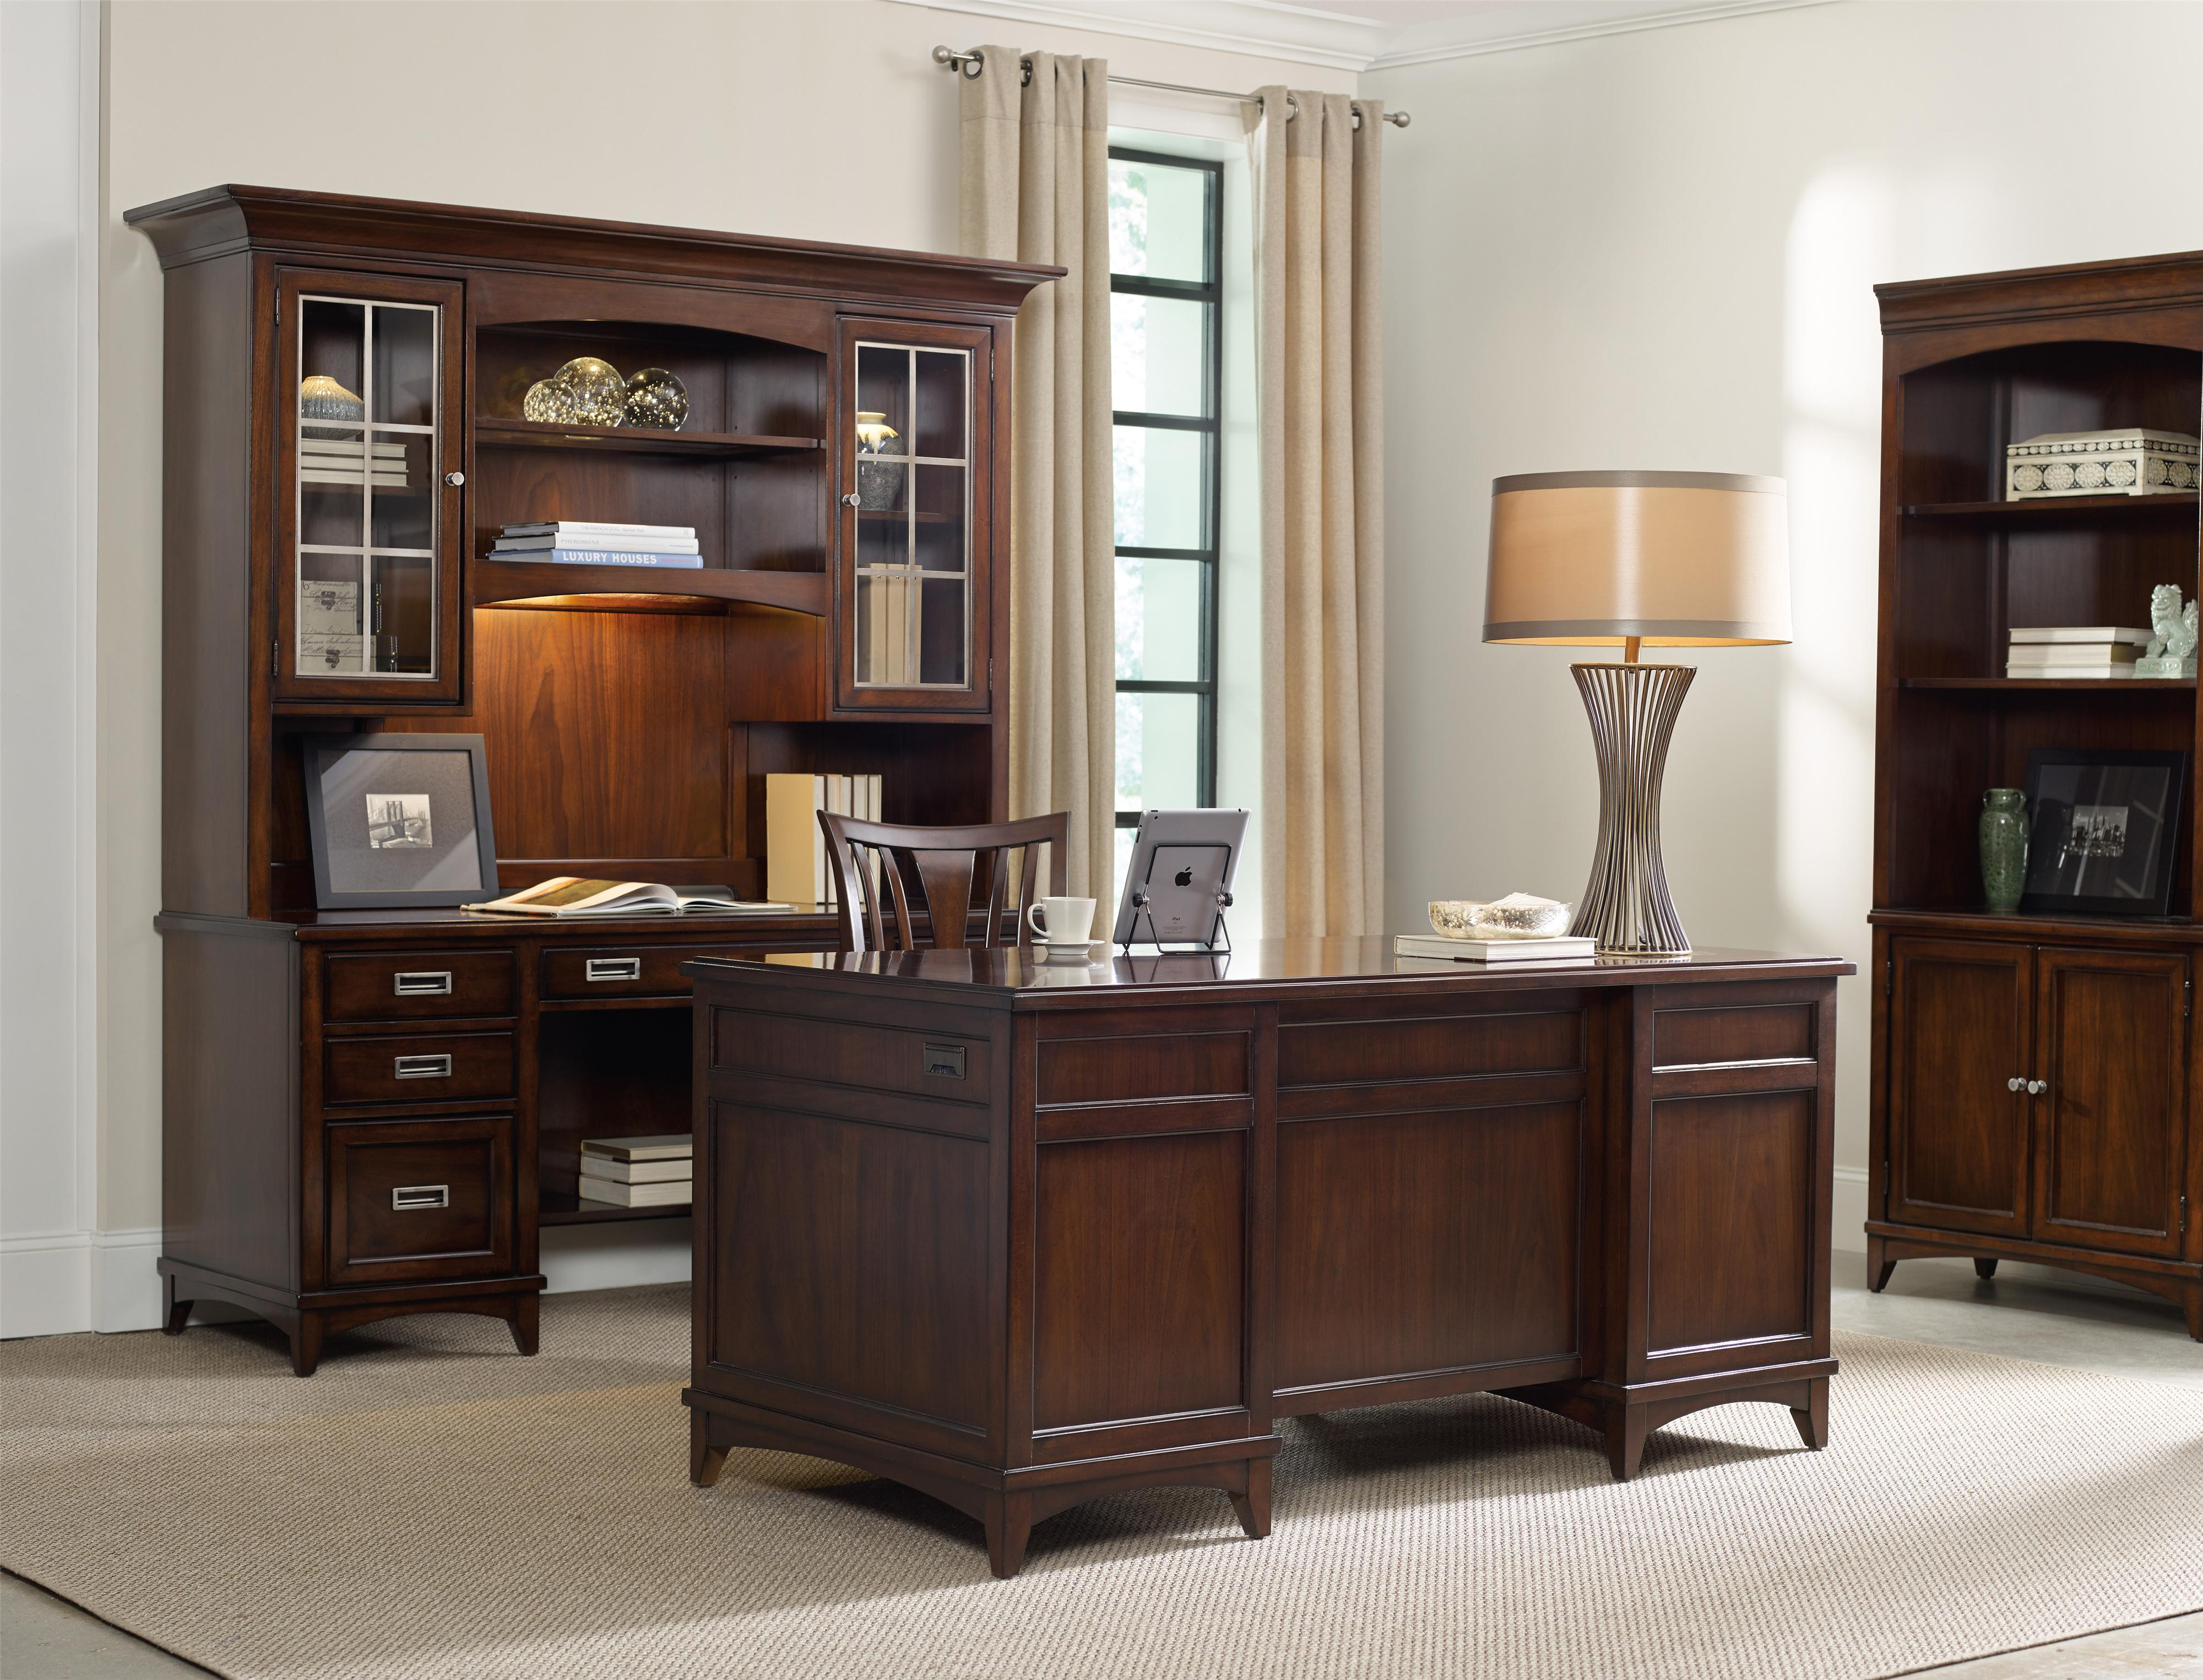 Hooker Furniture Latitude Walnut L Shaped Desk and Hutch Set with